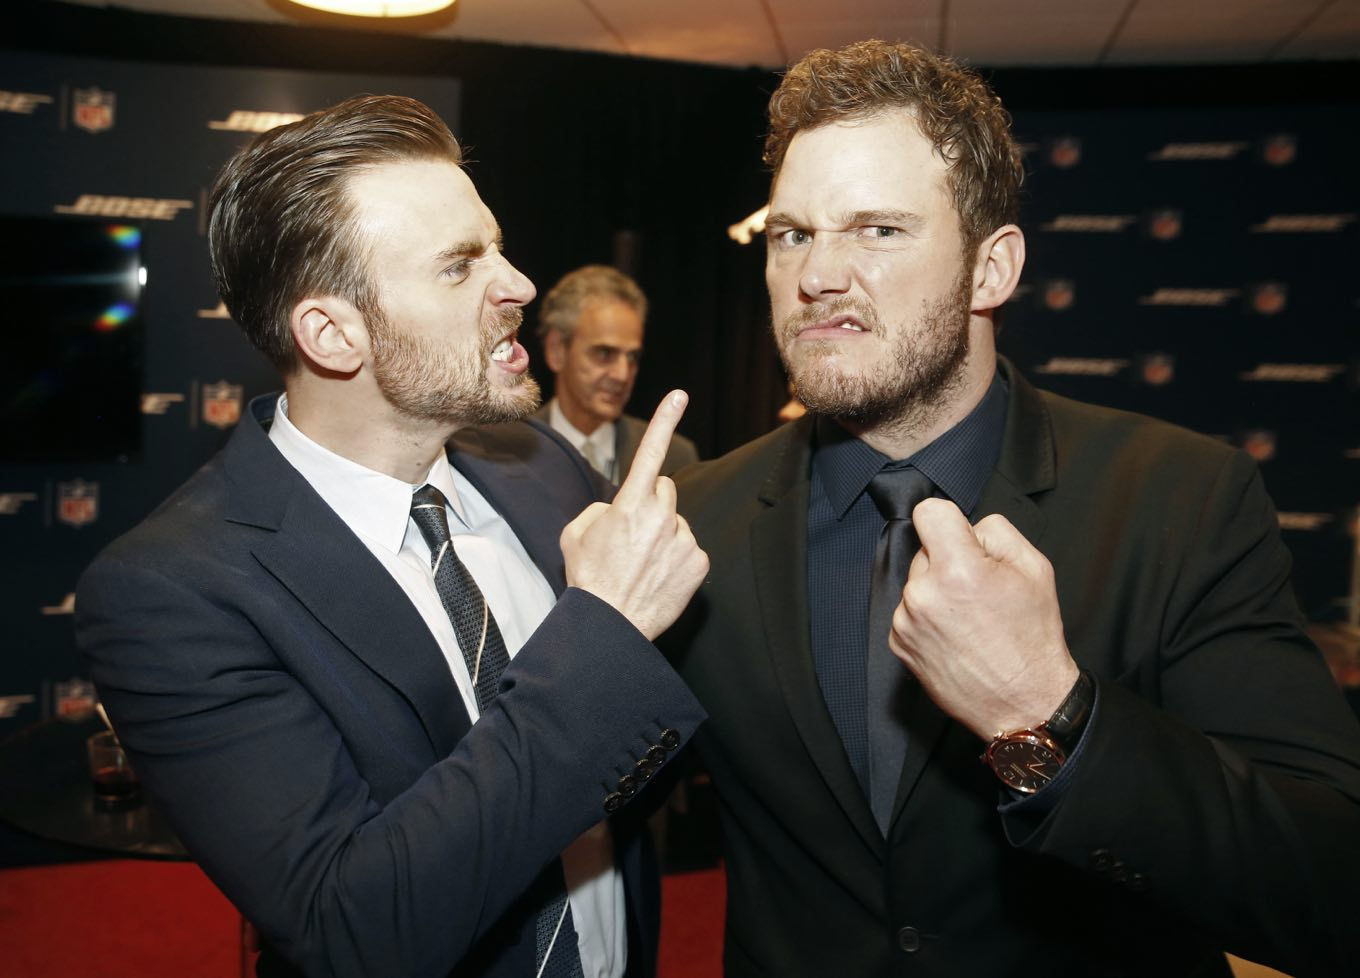 Chris Evans, left, and Chris Pratt who both play super heroes on film waged a friendly bet for a really sweet cause. Here they are at odds backstage at the 4th annual NFL Honors at the Phoenix Convention Center Symphony Hall on Saturday, Jan. 1, 2015. (Photo by: Colin Young-Wolff/Invision for NFL/AP Images)